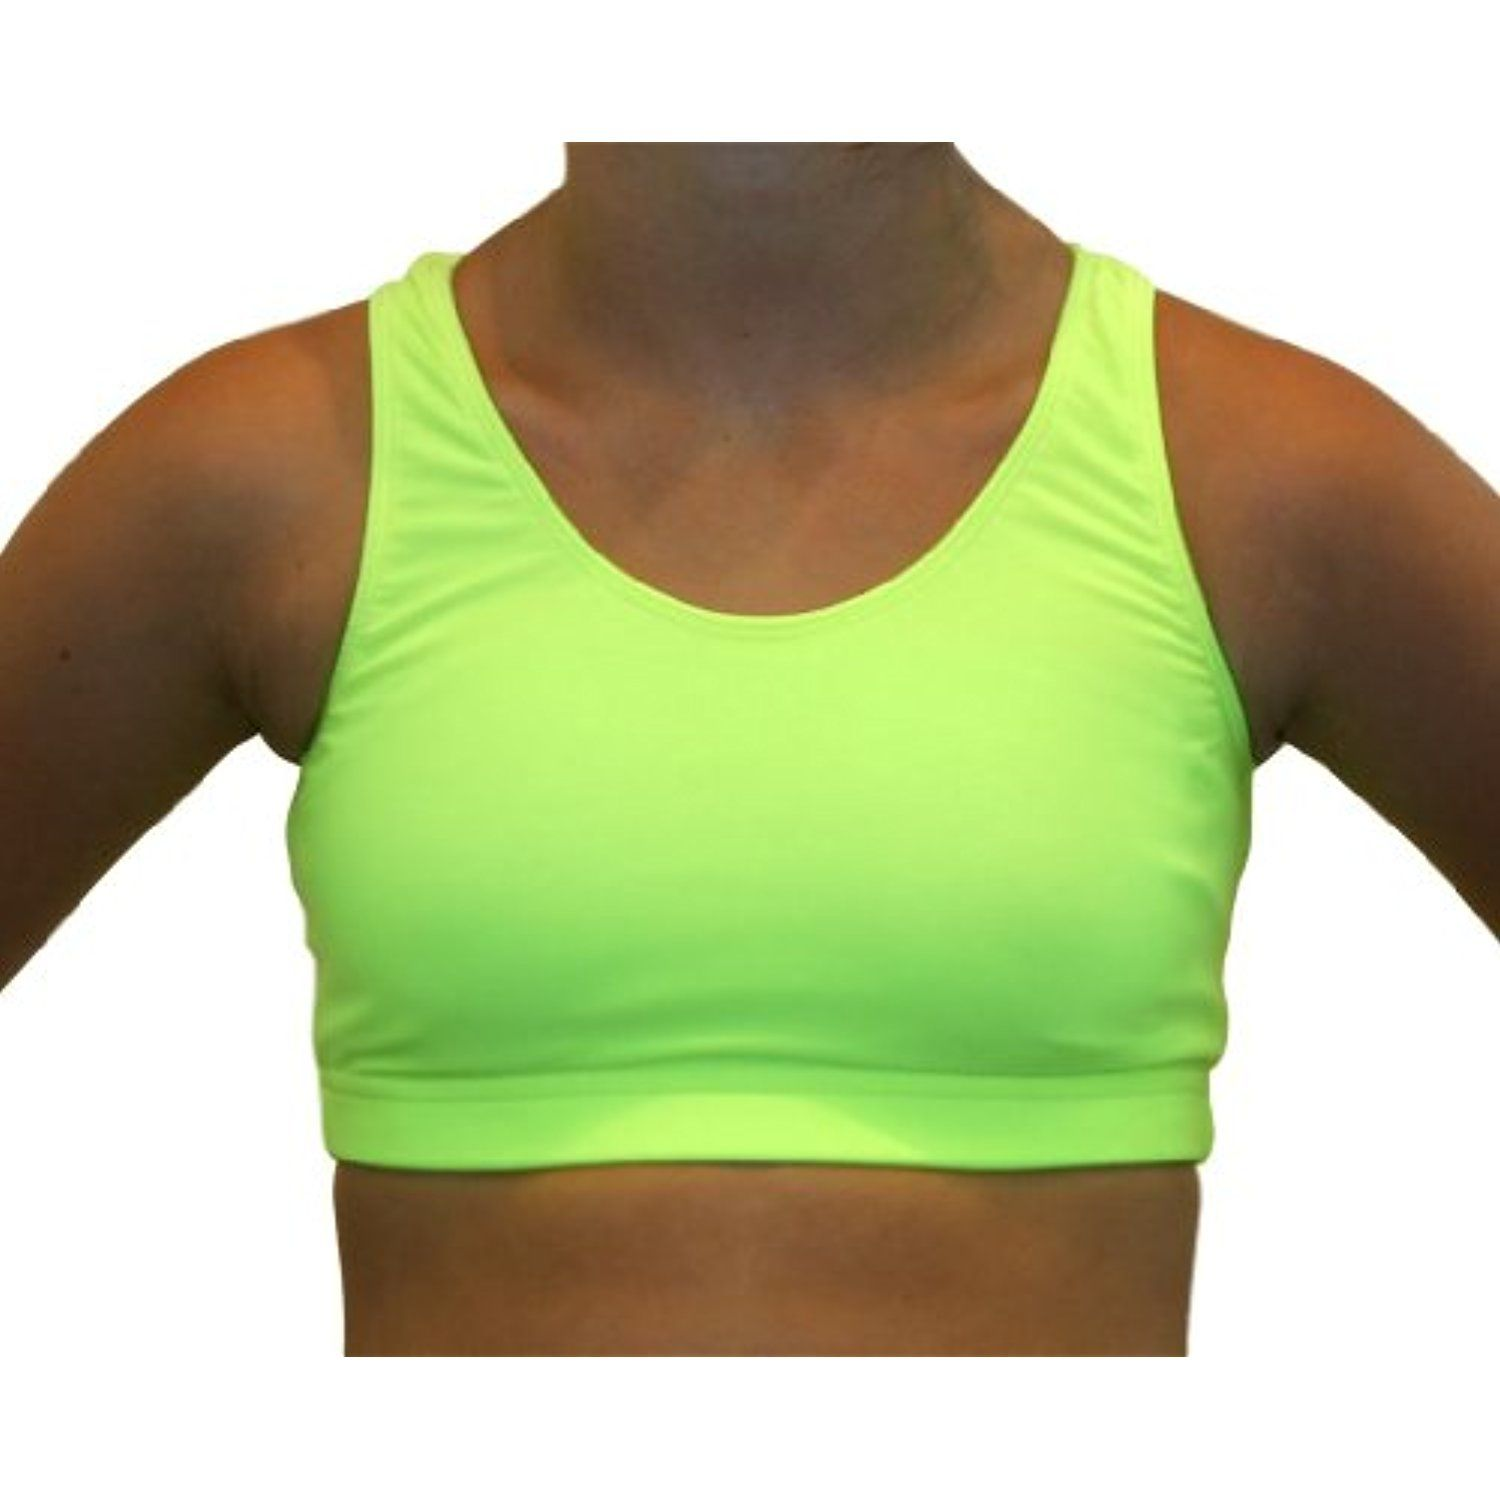 GemGear Neon Raser Sports Bra ** You can find more details